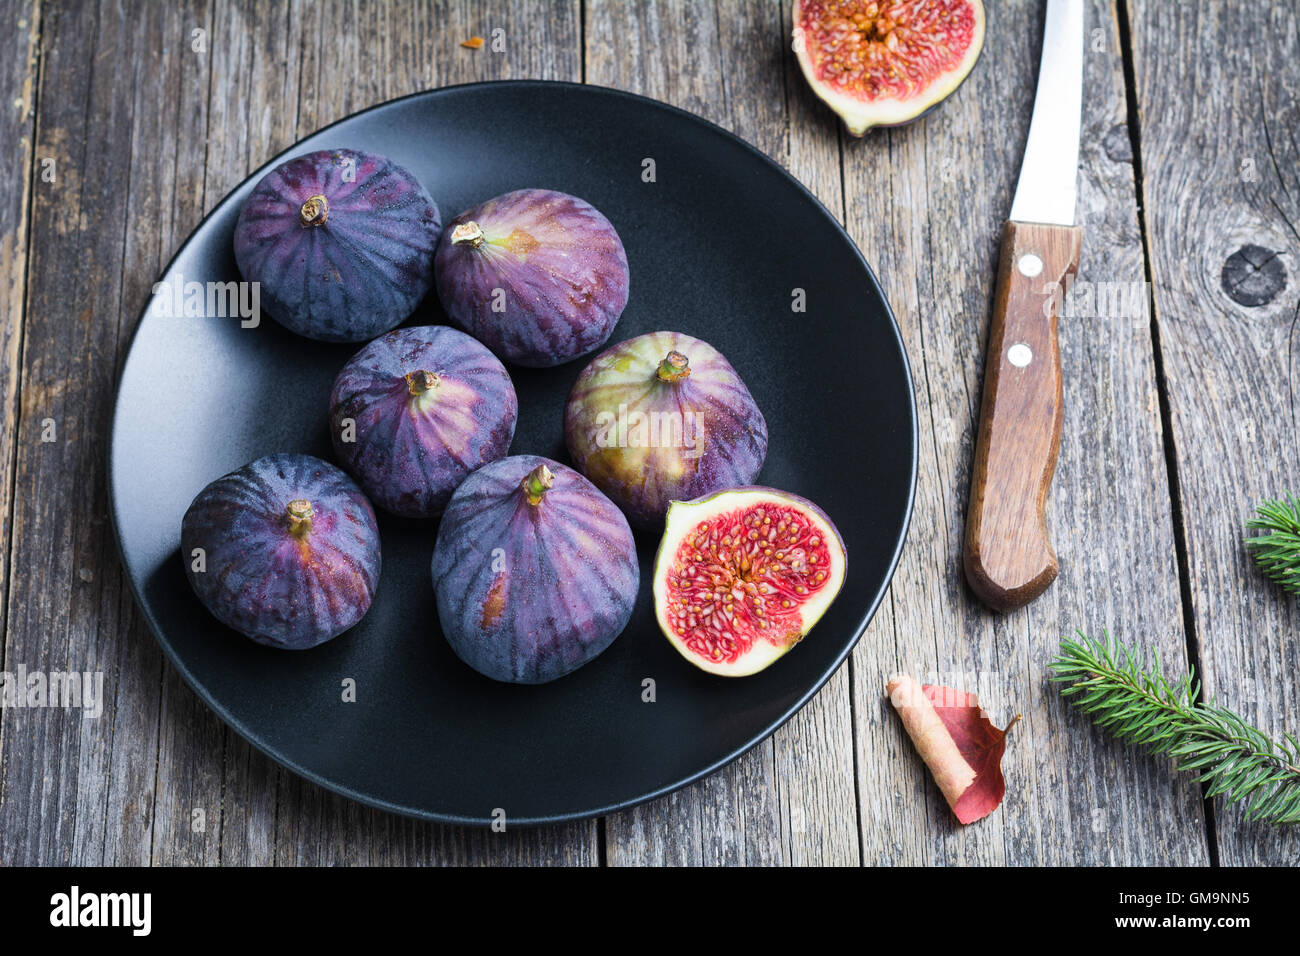 Fresh figs on black plate on wooden table - Stock Image